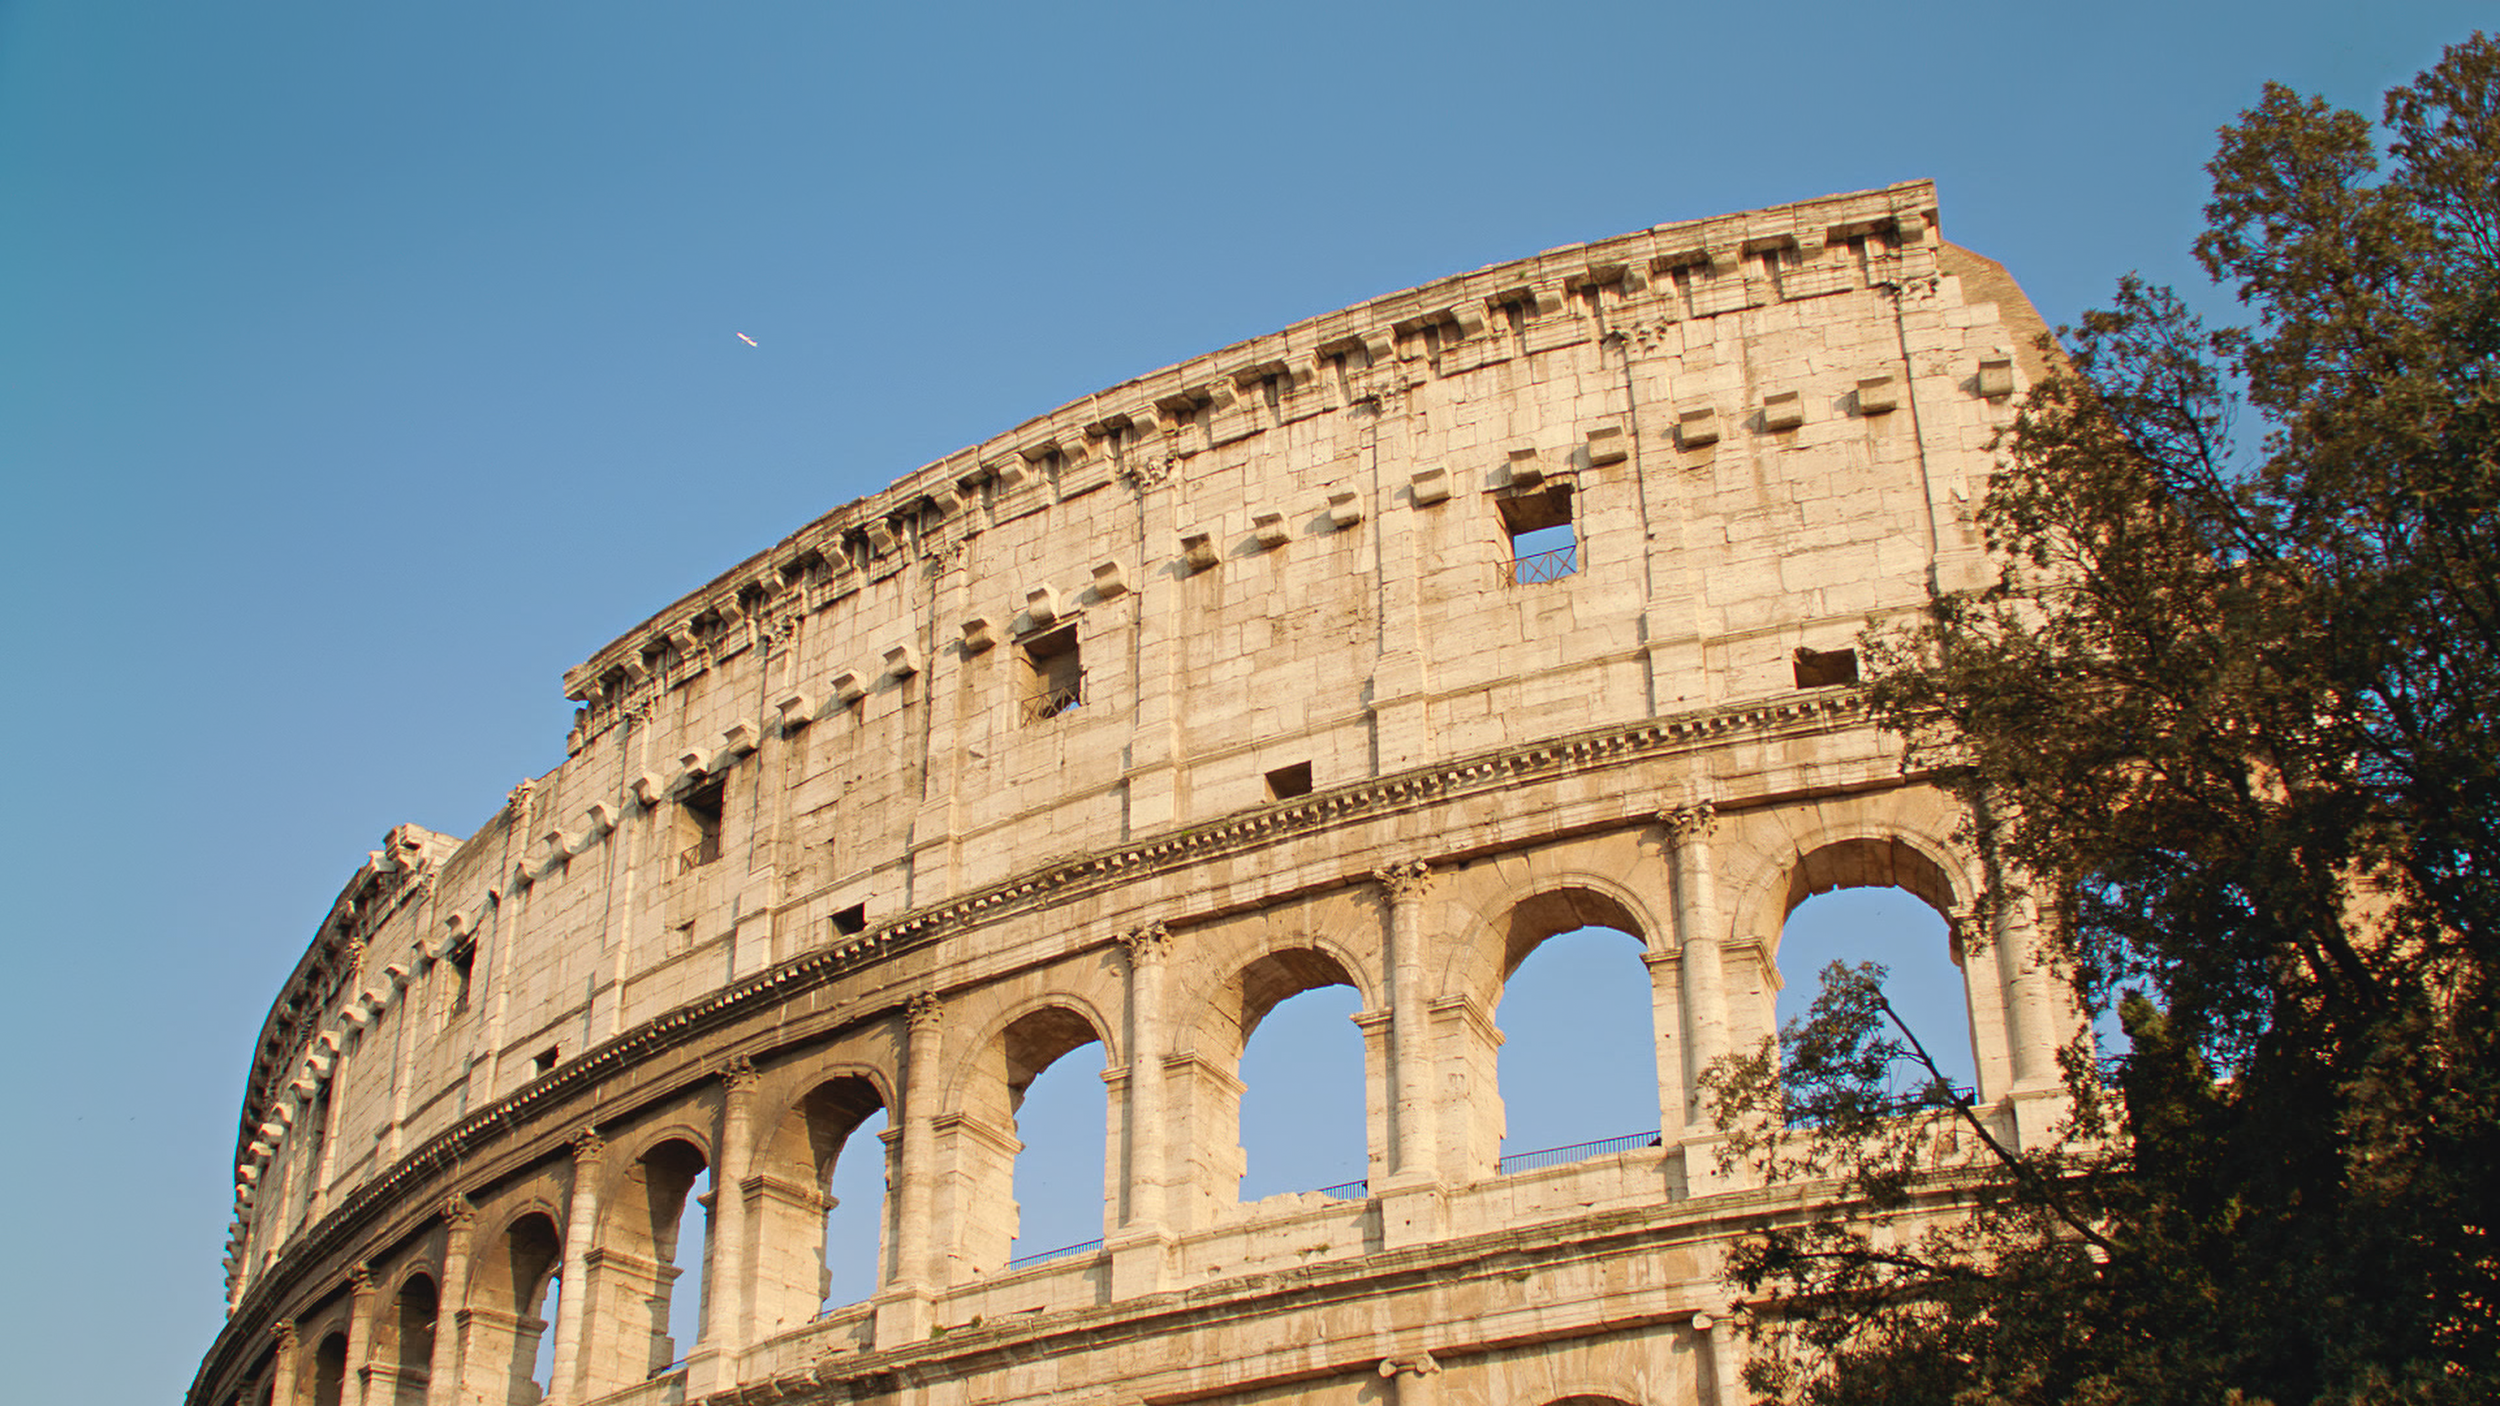 New and old: modern jet flying over the Colosseum in Rome, Italy.